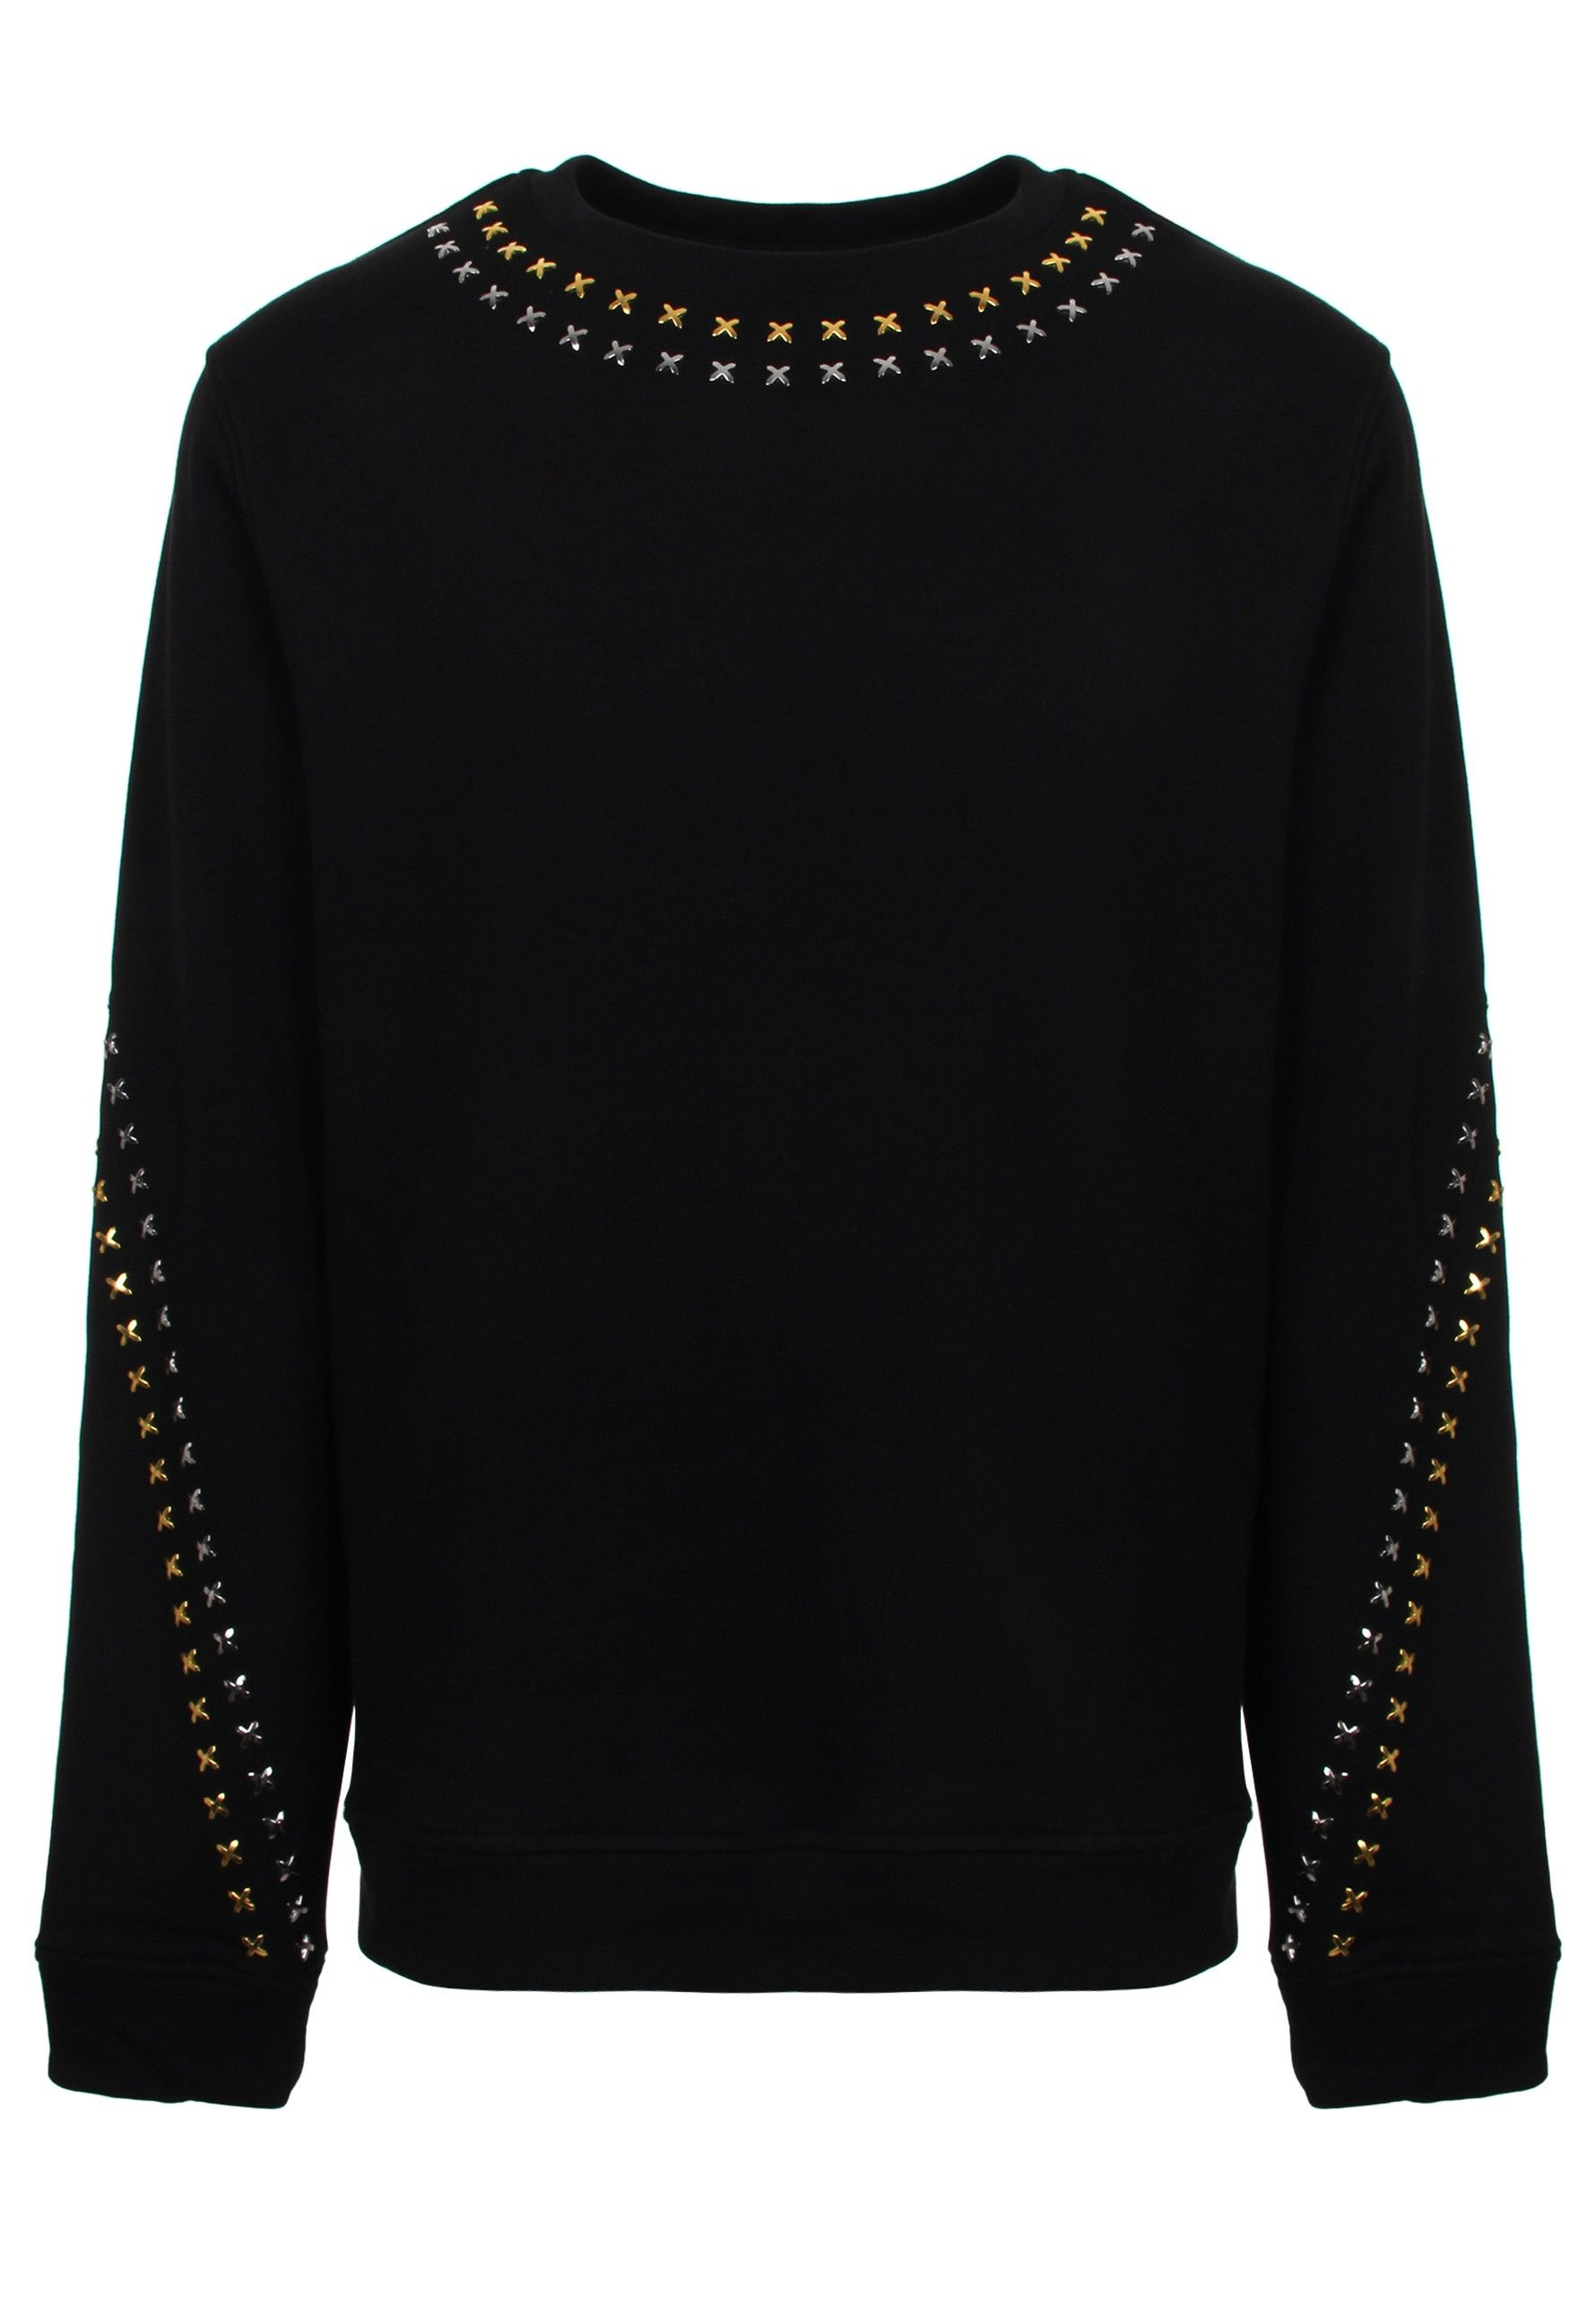 Versace Classic Studded With Collection Black Silver In Is Collection's Embellished Sweatshirt Cross RpFUqR